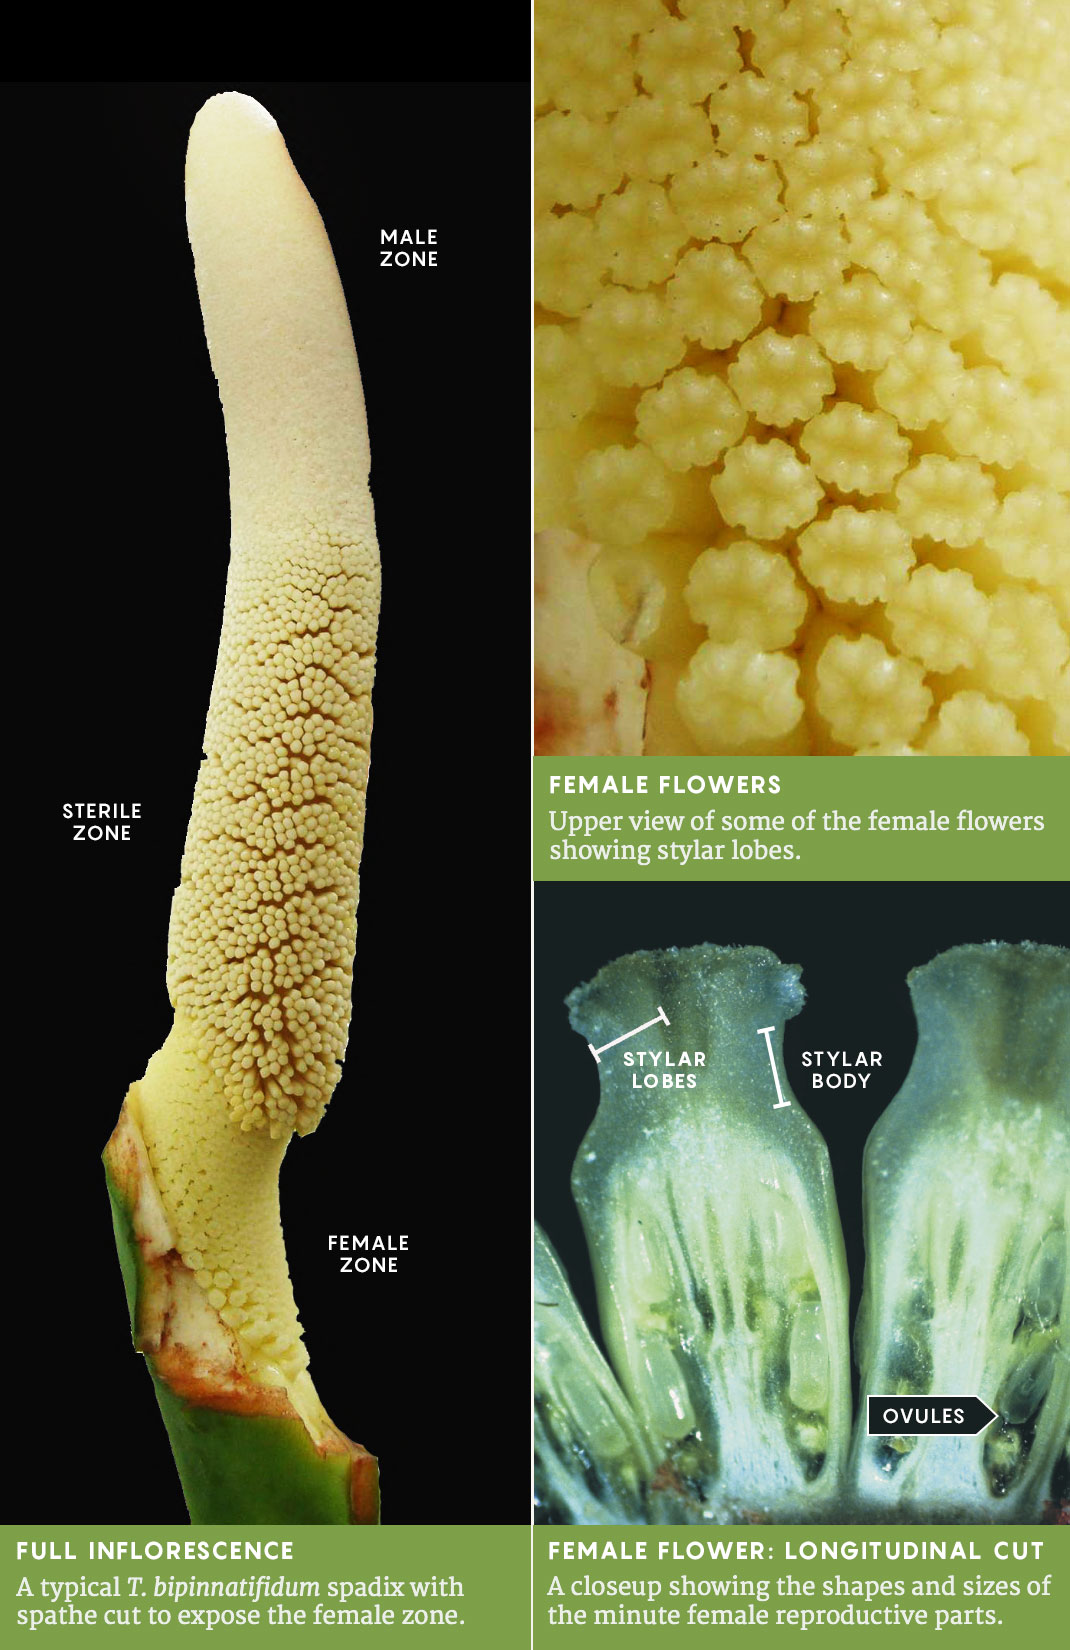 T. bipinnatifidum inflorescence, graphic